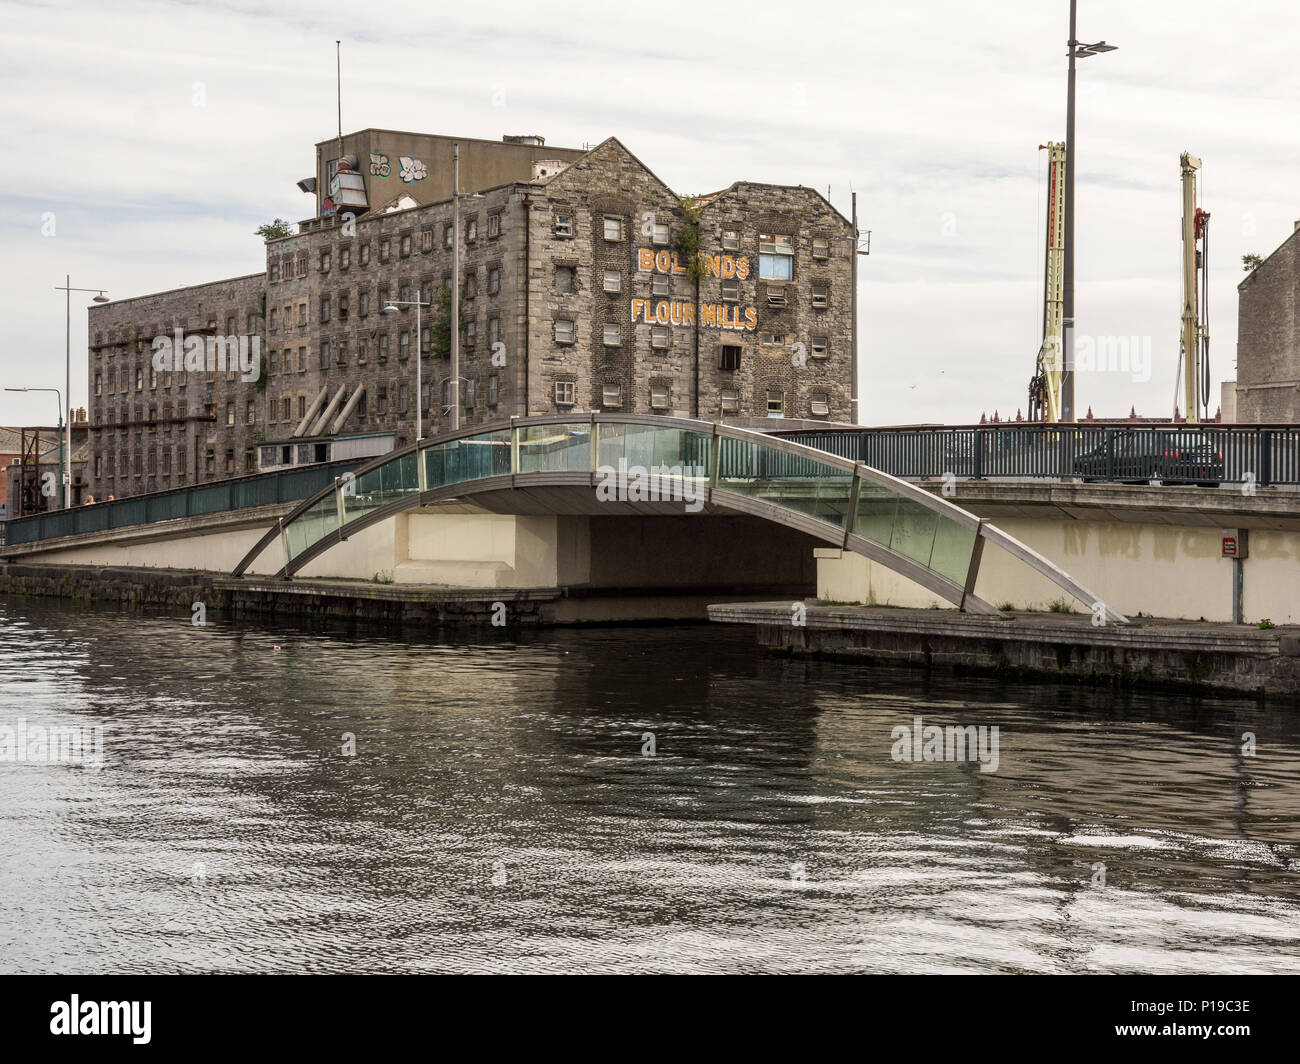 Dublin, Ireland - September 17, 2016: Old warehouse buildings on the Grand Canal Dock in Dublin's regenerating Docklands district. - Stock Image